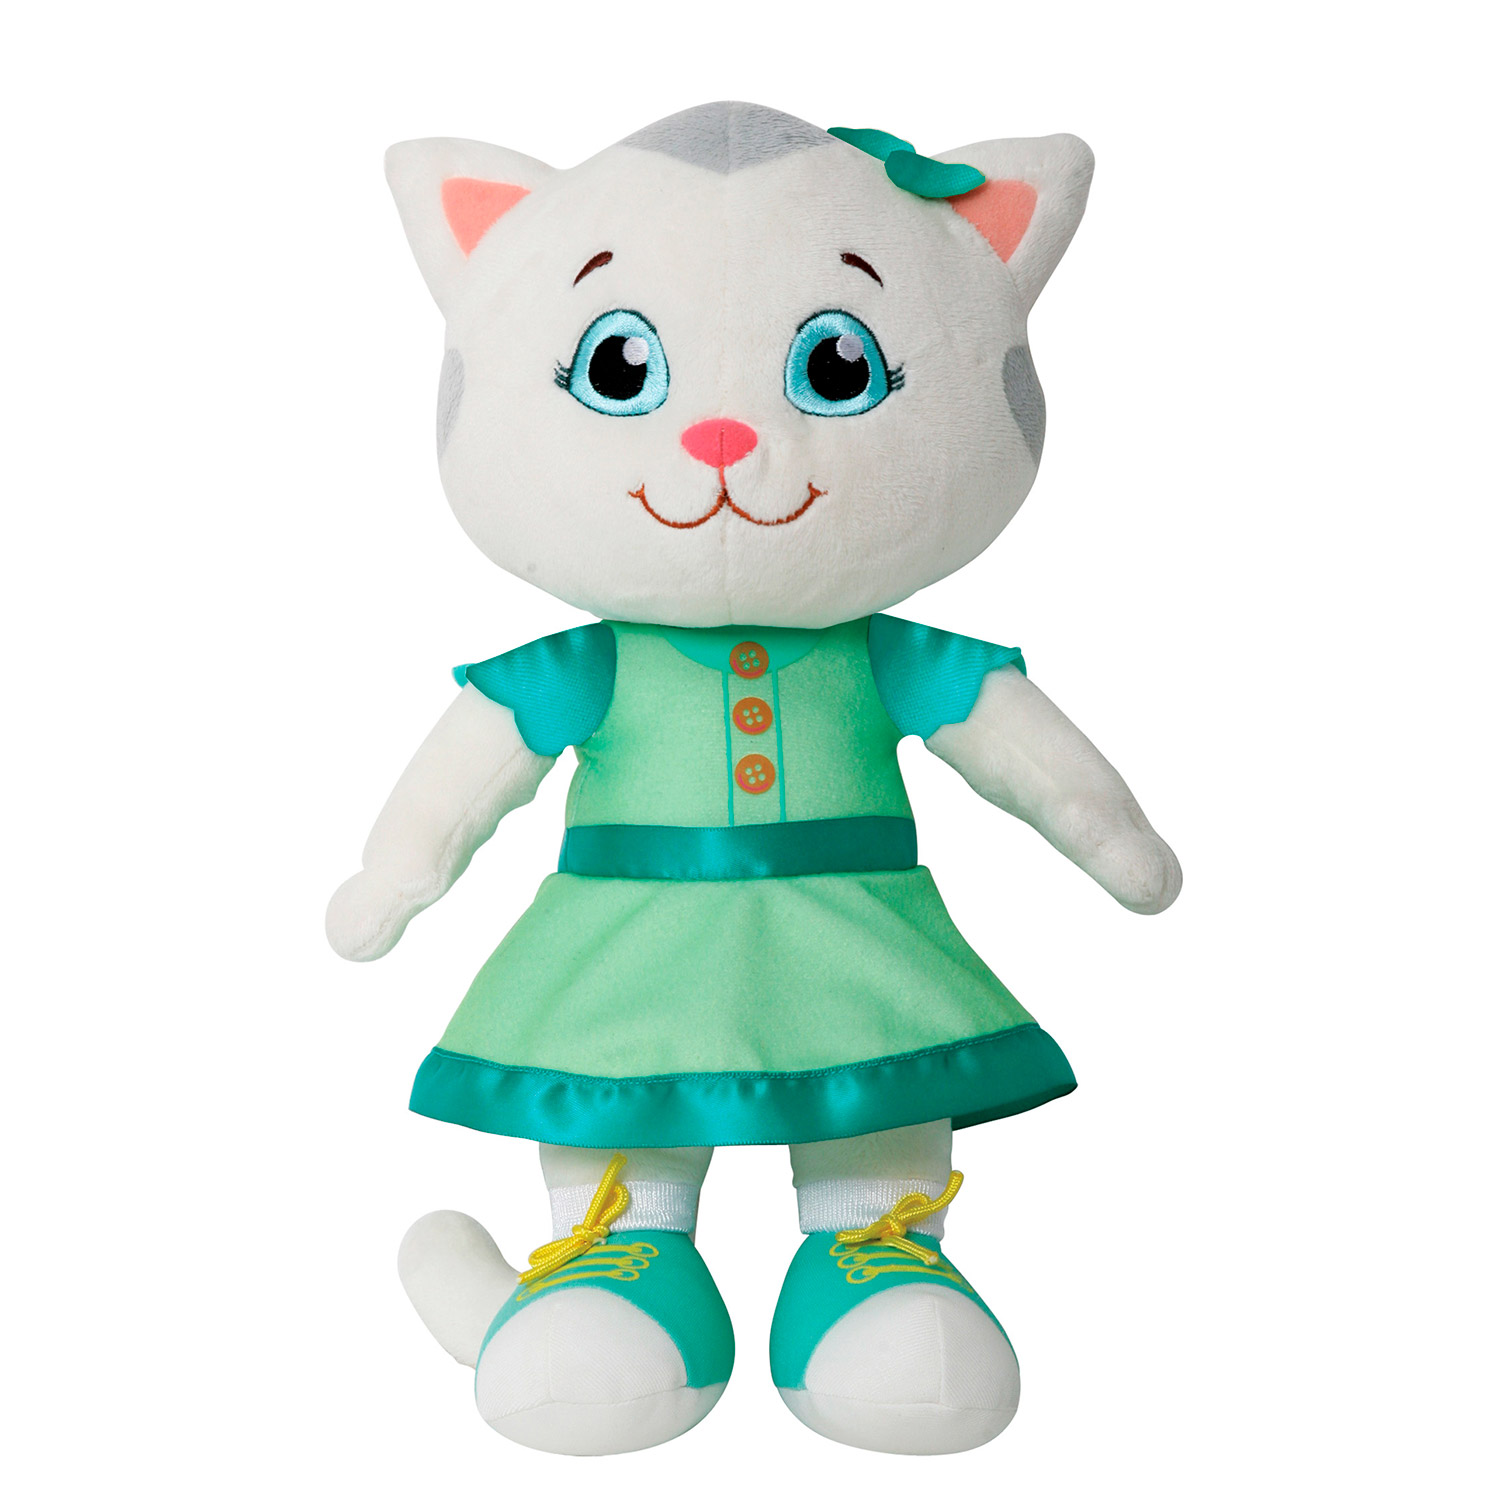 Katerina Kittycat Feature Plush